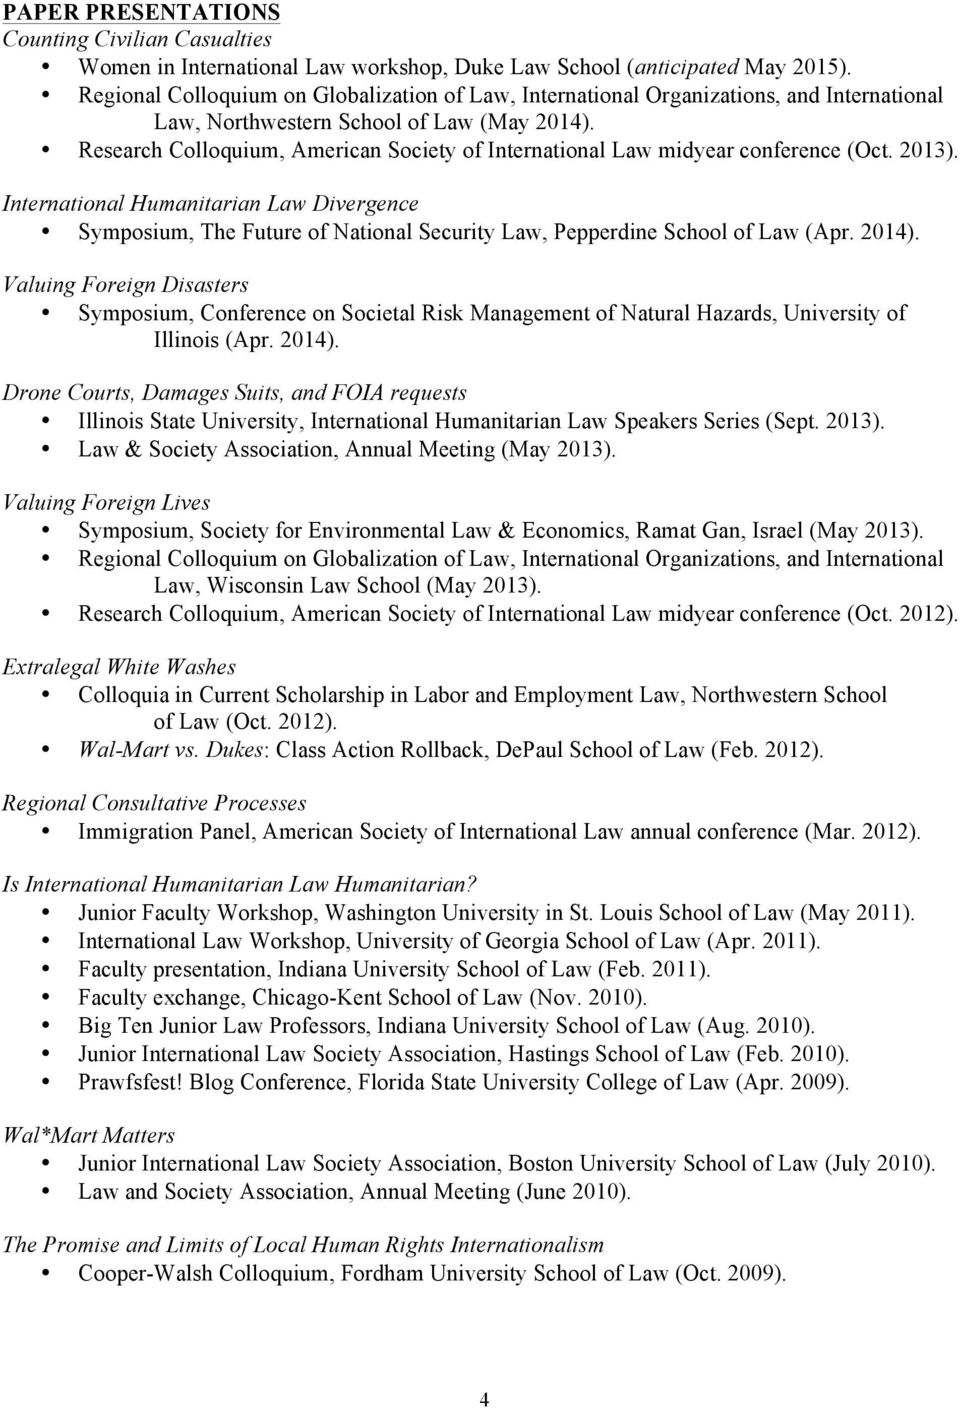 Research Colloquium, American Society of International Law midyear conference (Oct. 2013).